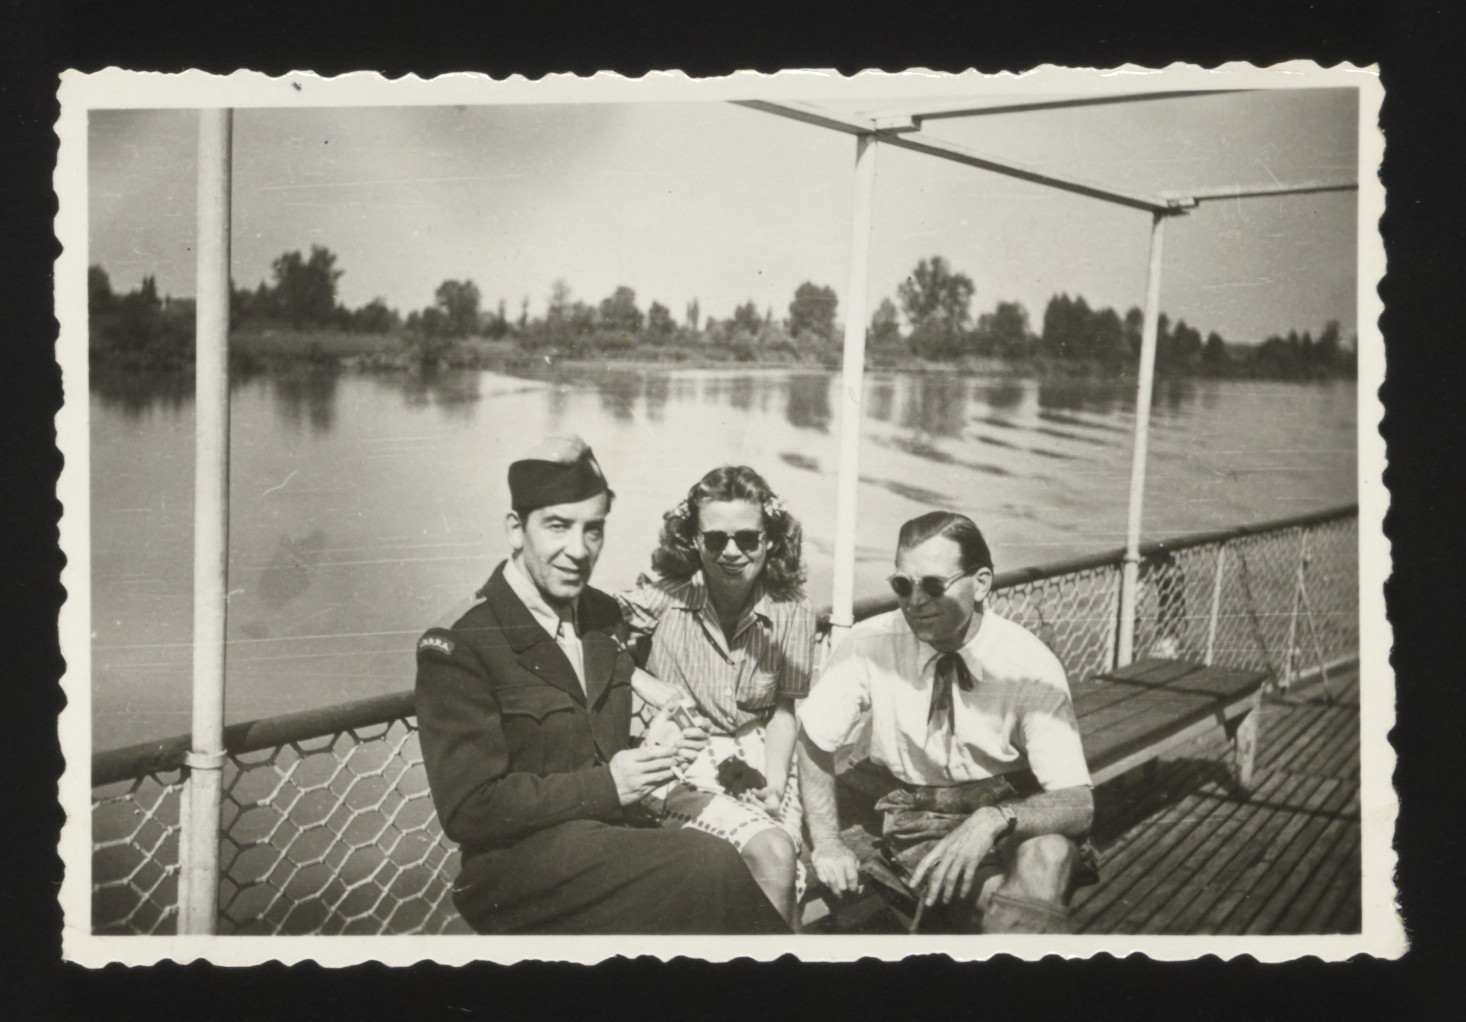 UNRRA officer, William Buckhantz poses with two friends by the shore of the Danube near the Deggendorf displaced persons camp.